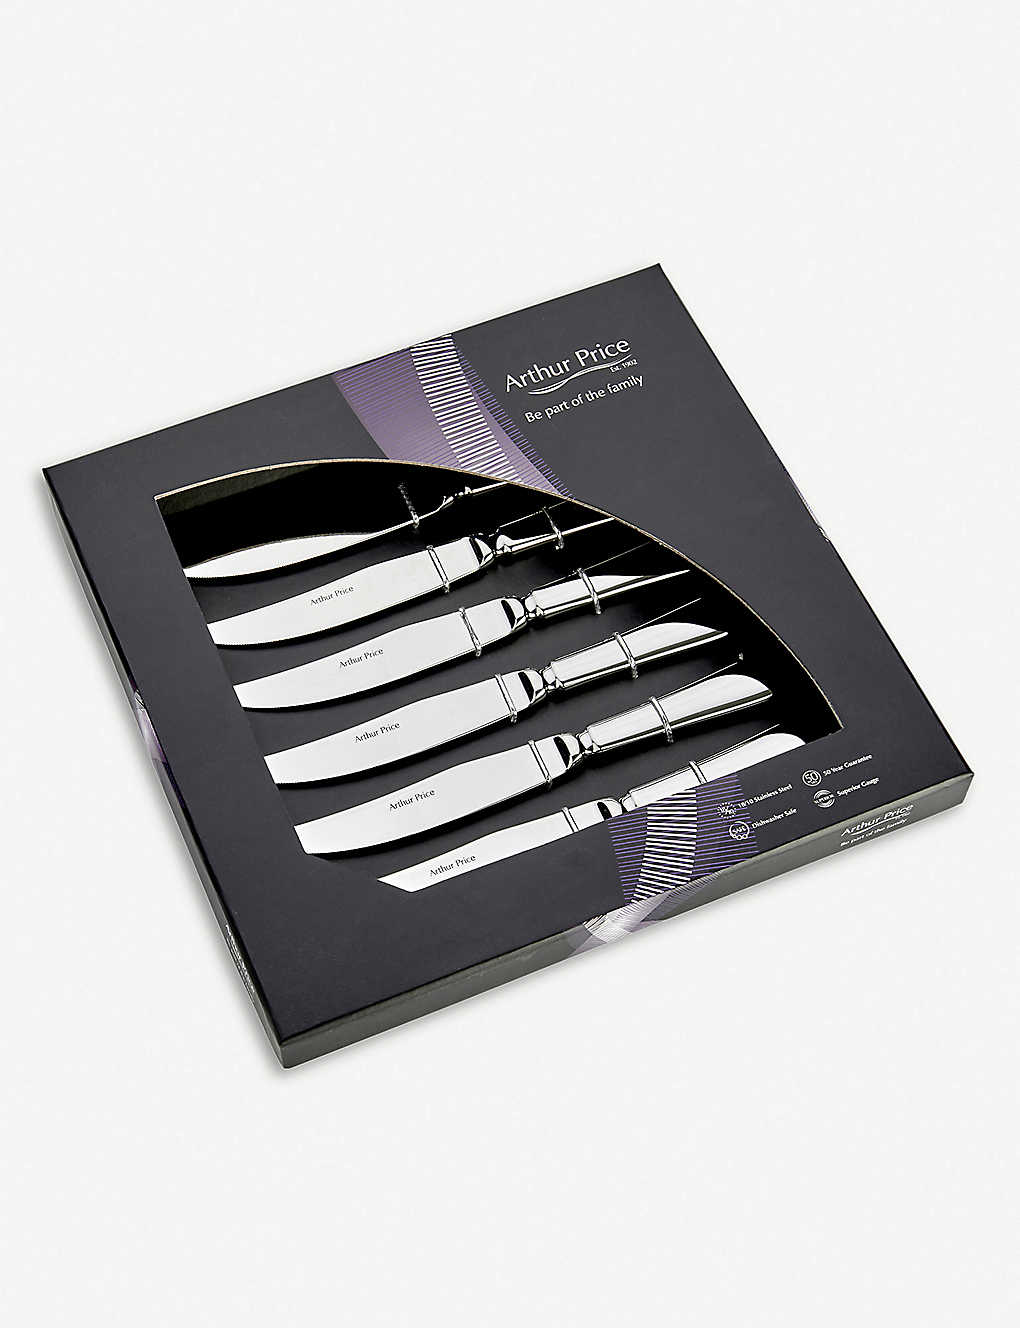 ARTHUR PRICE: Georgian stainless steel steak knives set of 6